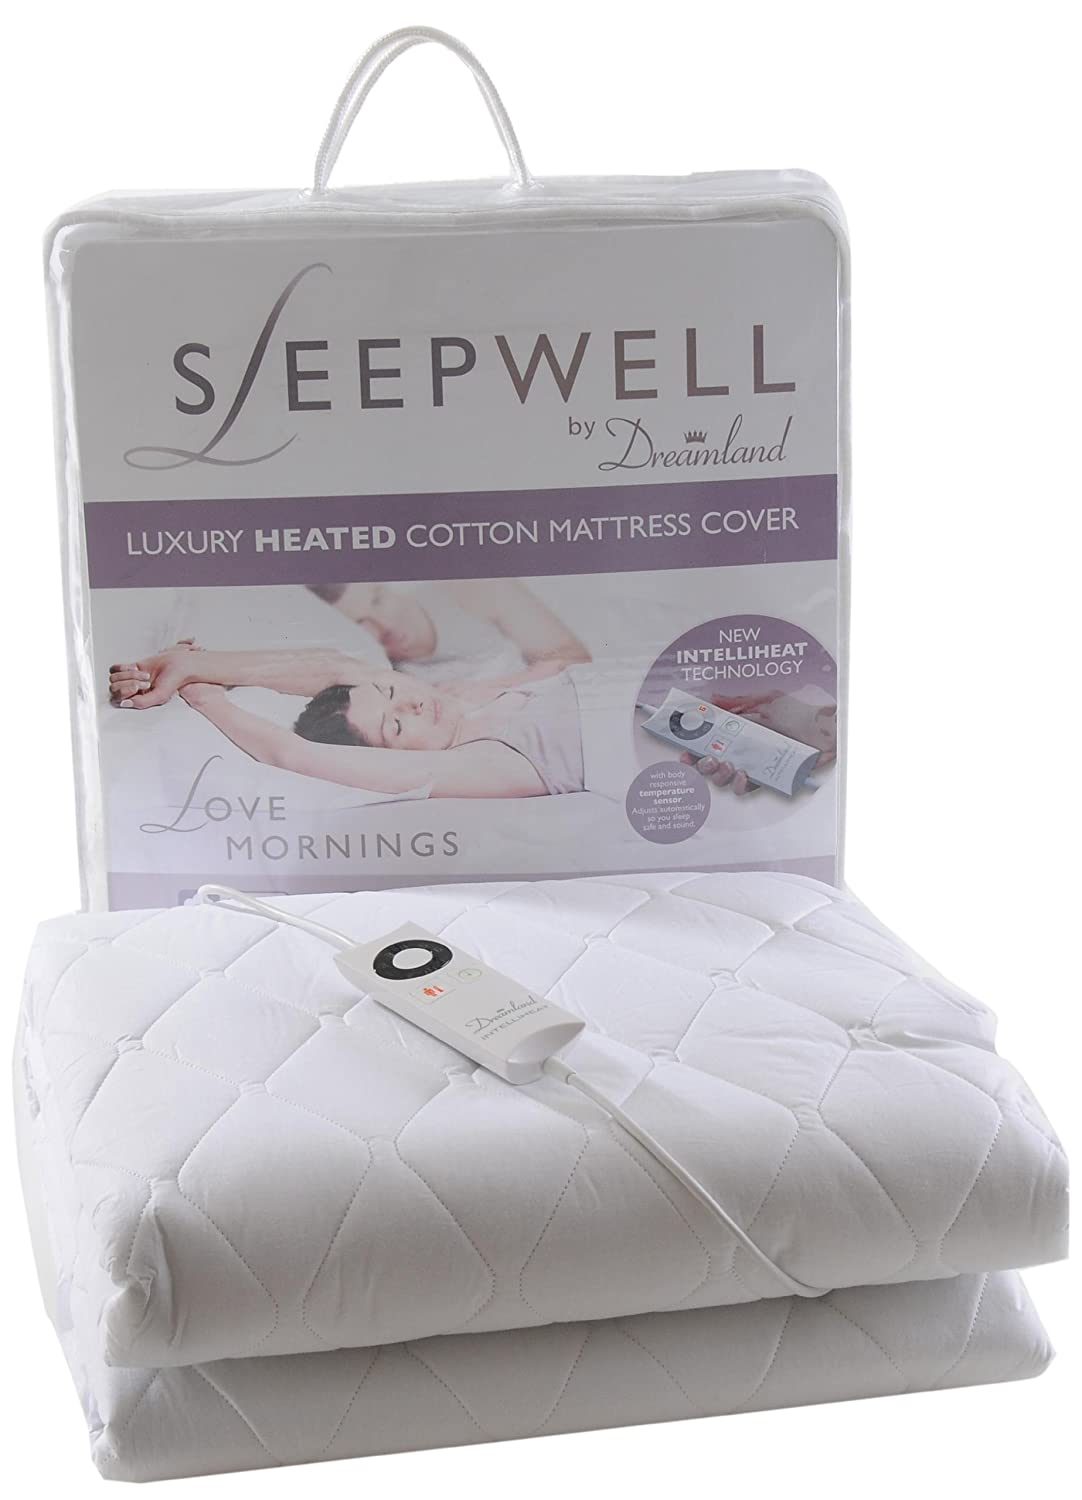 dreamland sleepwell single control heated pure cotton quilted fully fitted mattress cover amazoncouk kitchen u0026 home